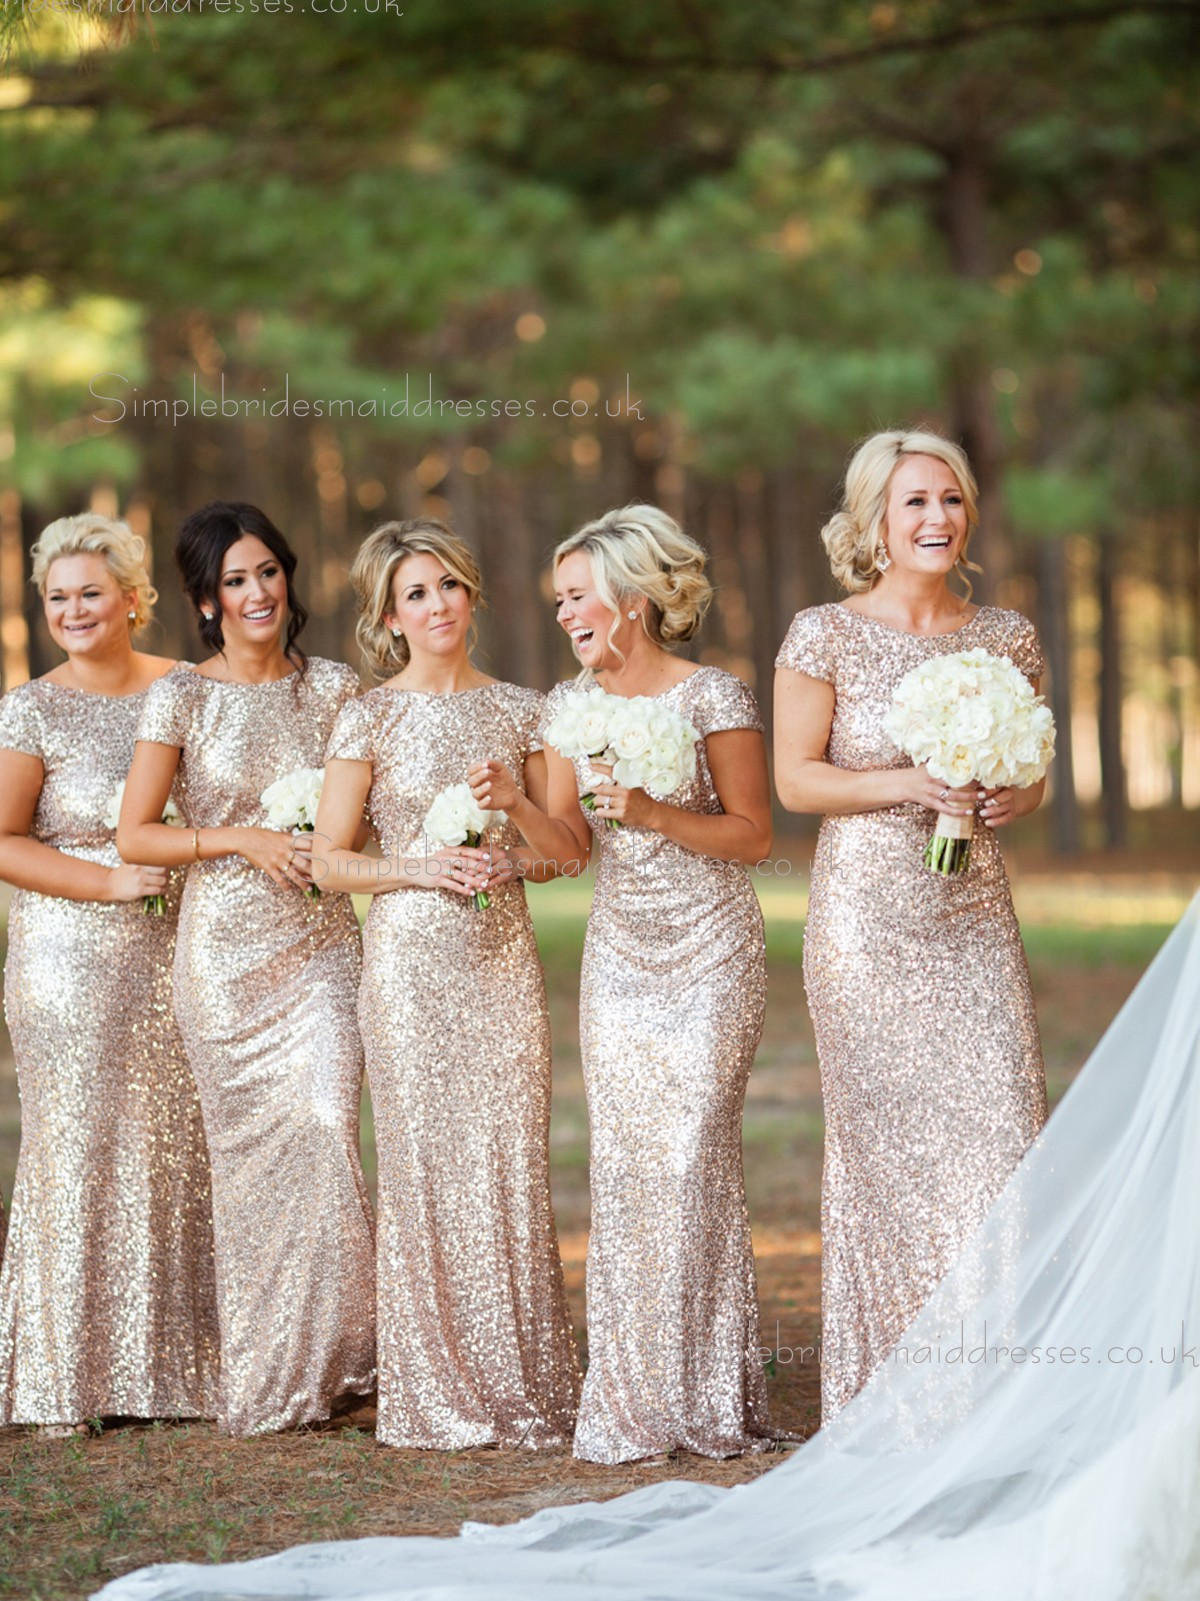 Champagne bridesmaid dresses uk cheap champagne bridesmaid hot sale sparkly sequin long gold champagne rose gold bridesmaid dress ombrellifo Image collections